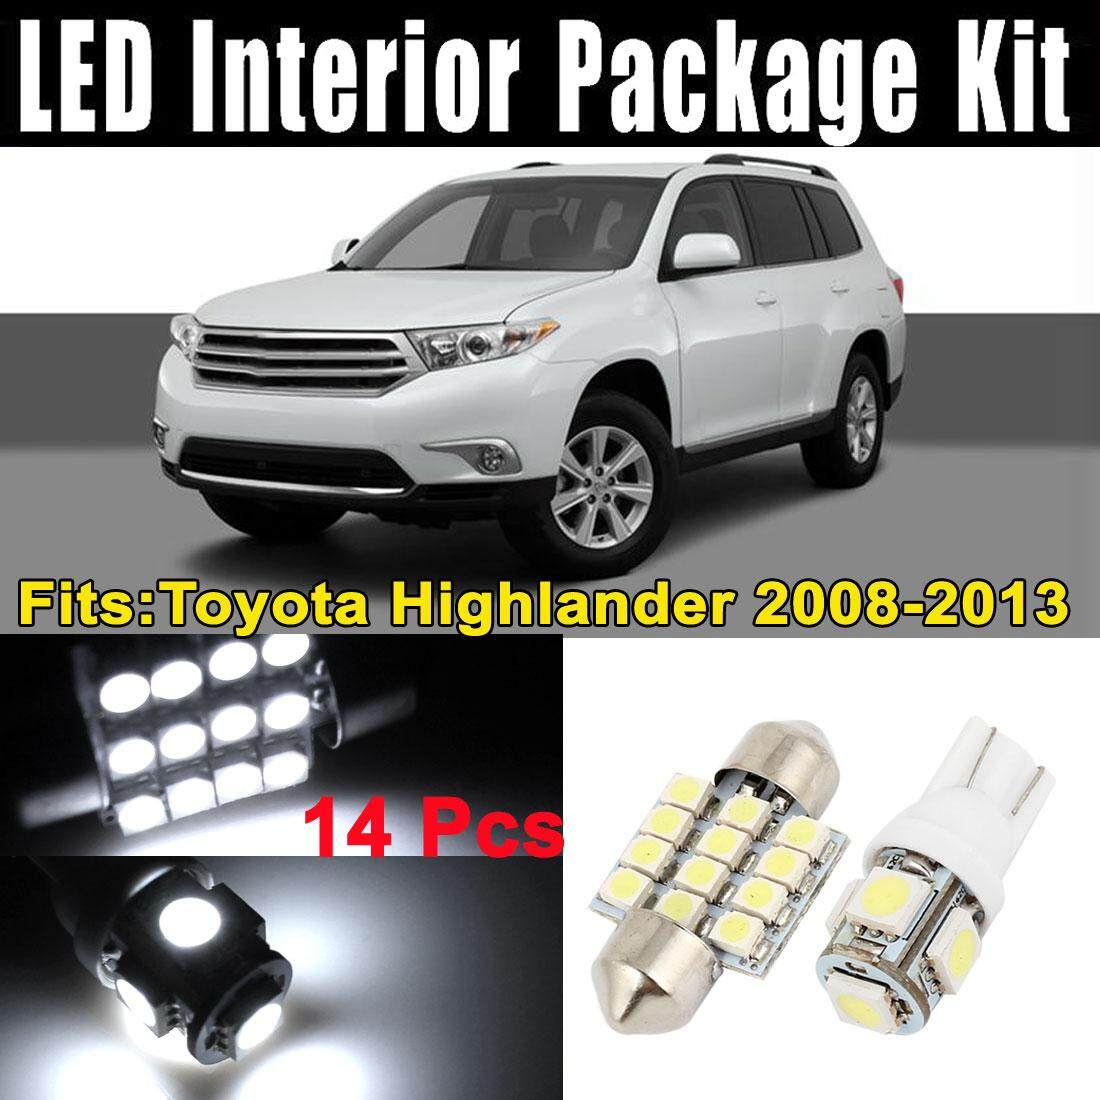 SA YANYI 14Pcs LED Lights White Interior Dome Map Lamp Kit for Toyota Highlander 2008-